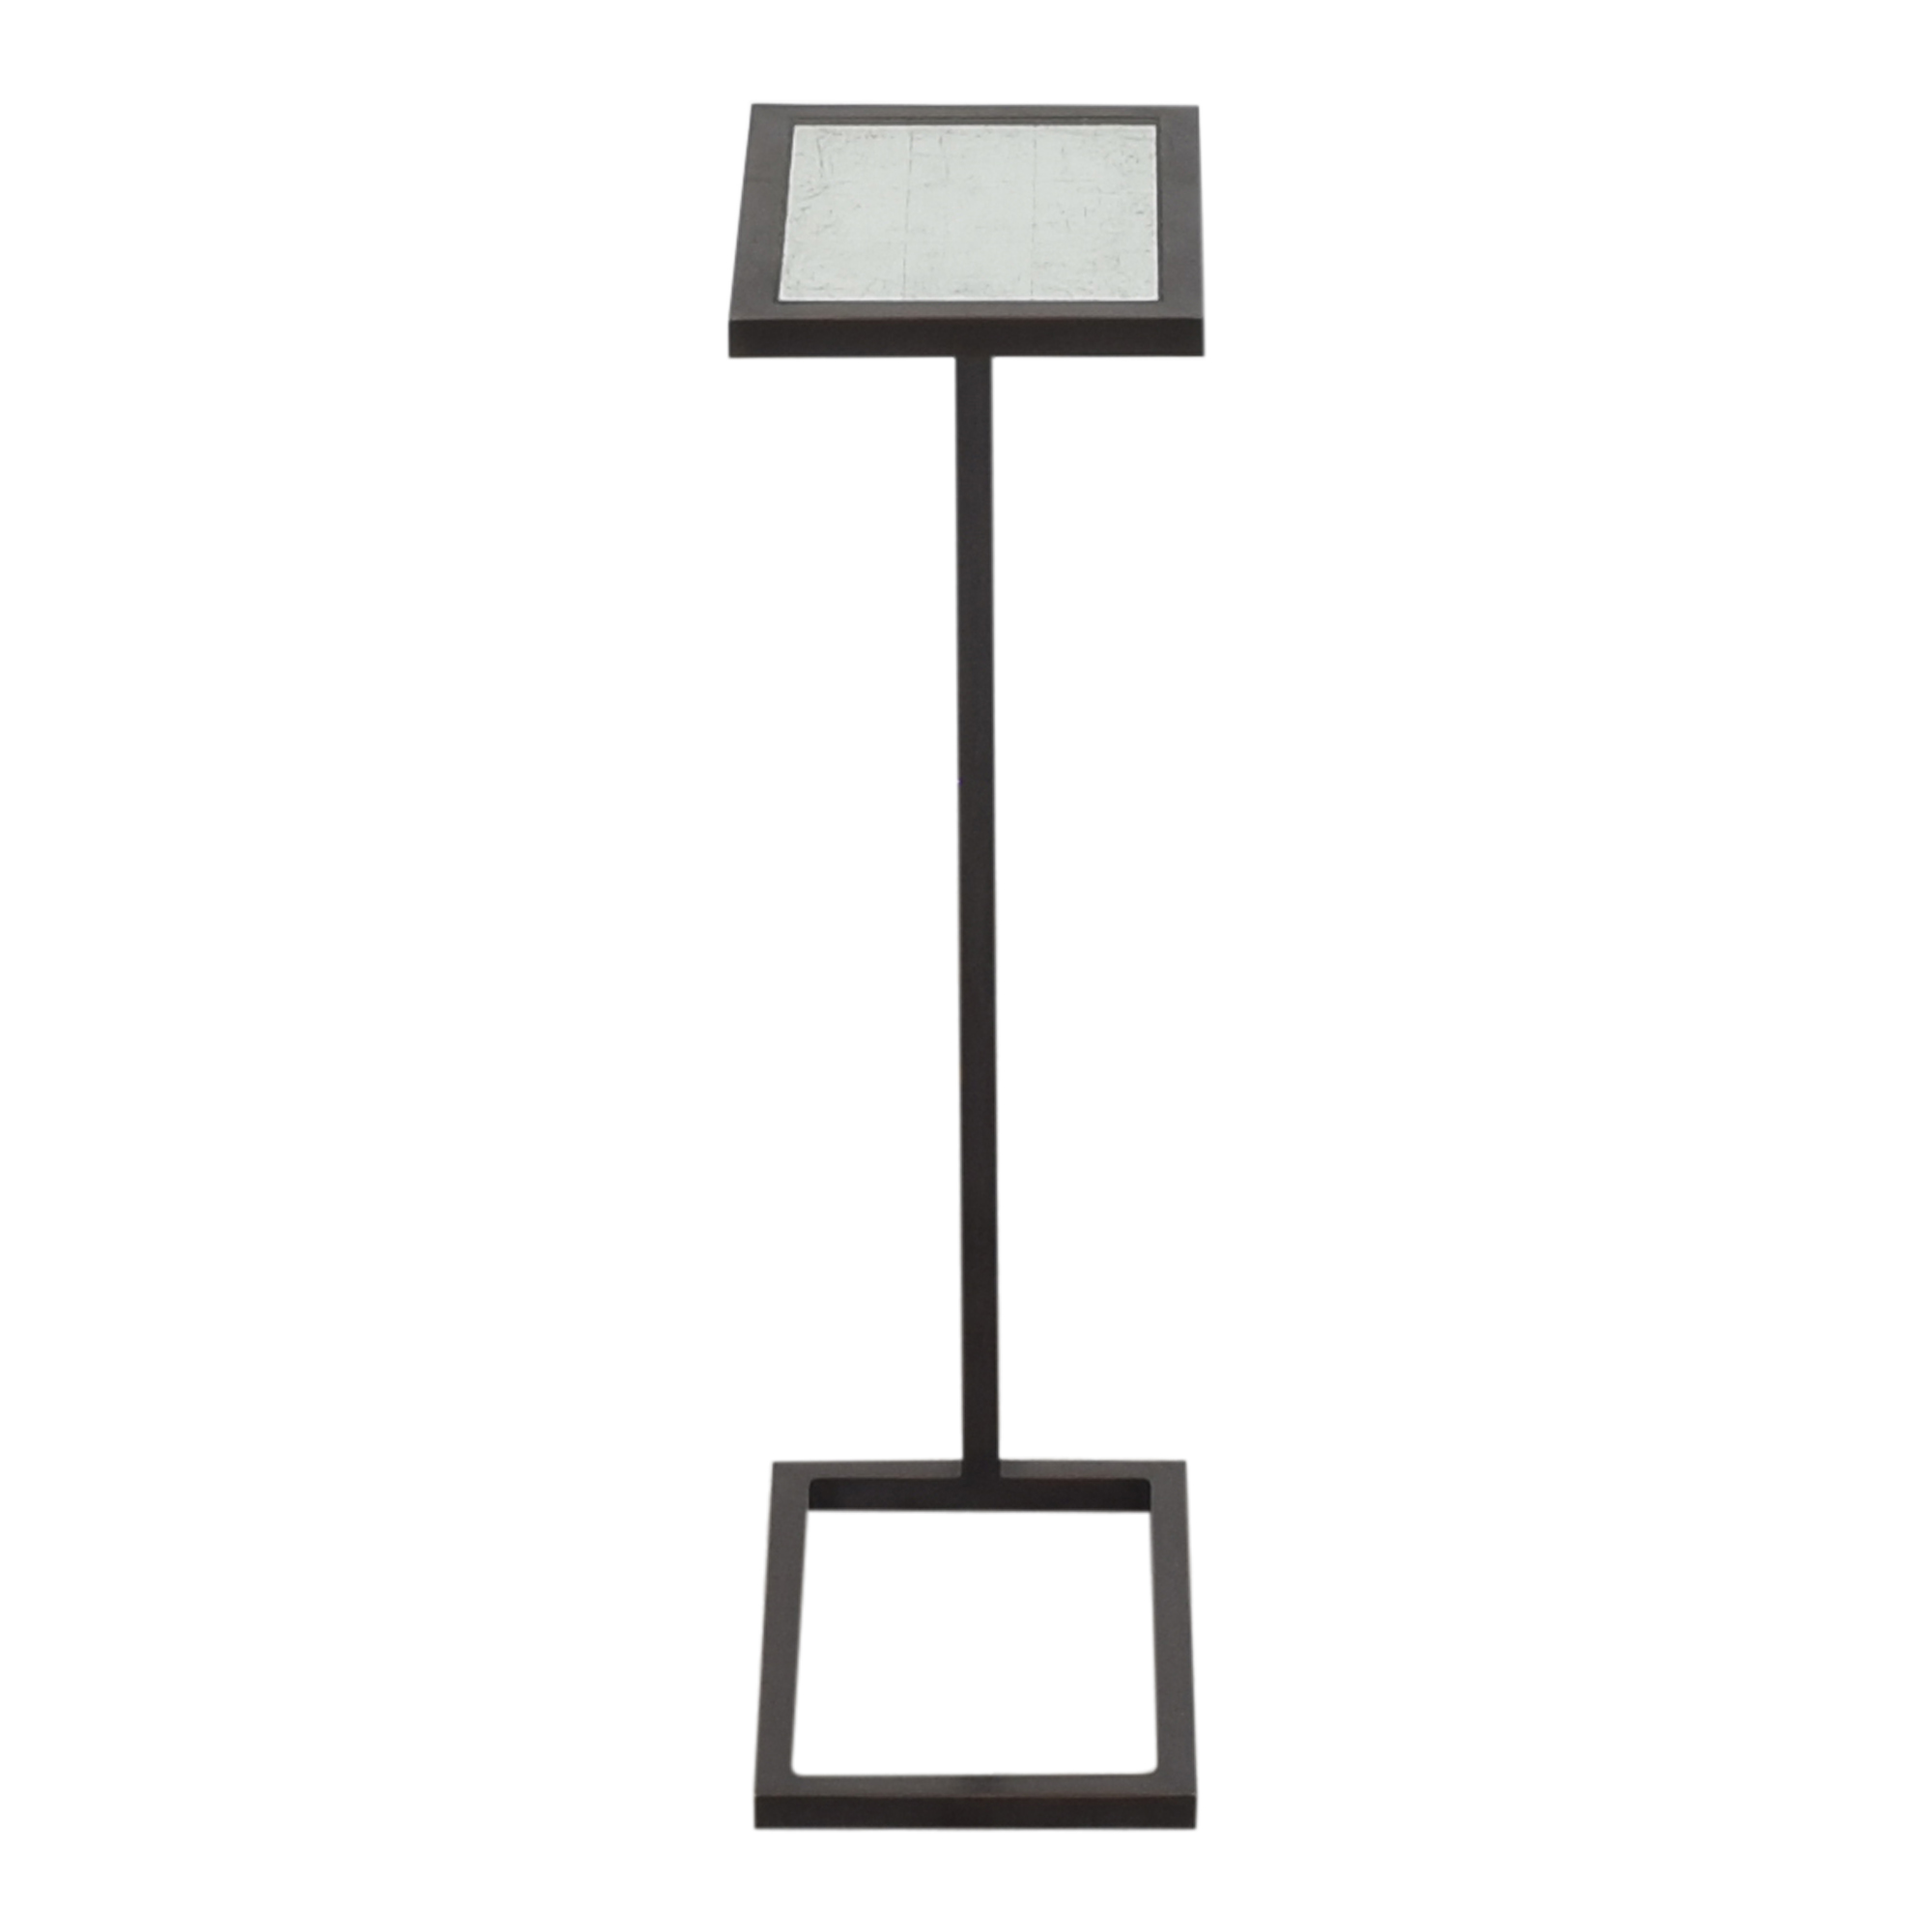 Restoration Hardware Restoration Hardware Crosby Side Table price